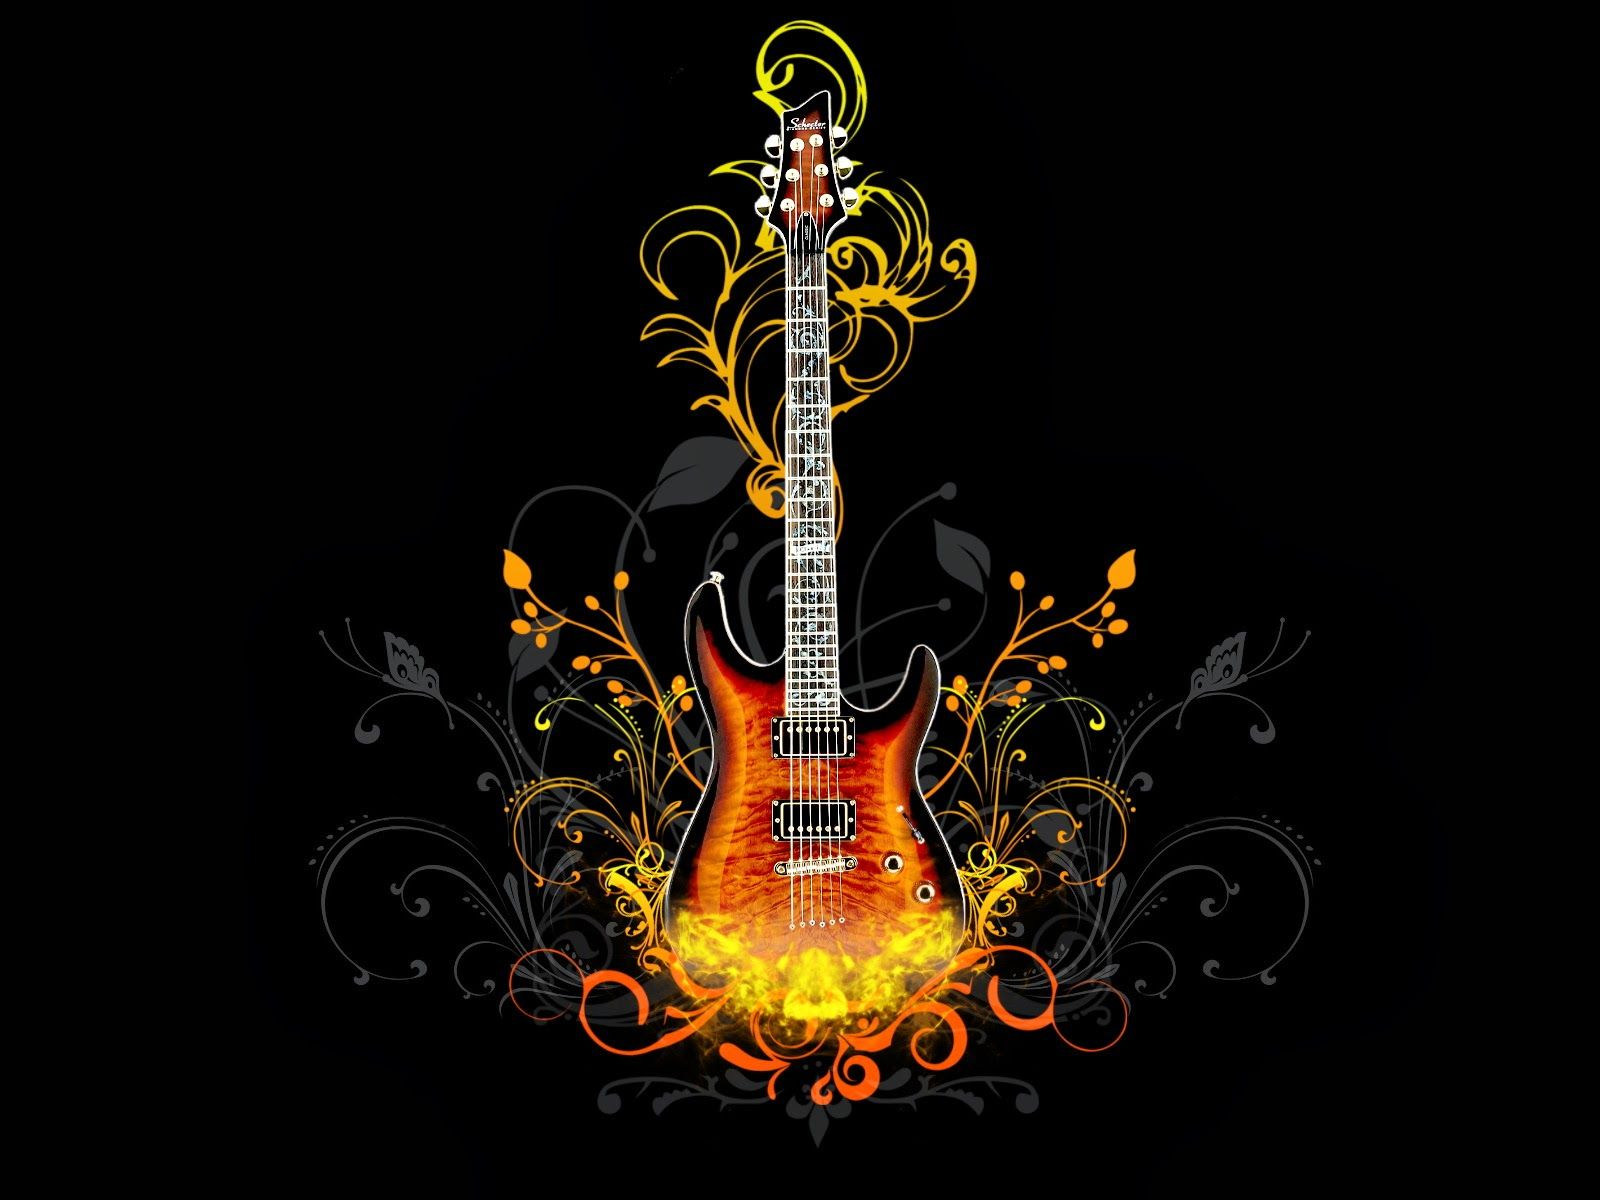 Hd wallpaper guitar - Guitar Wallpapers Most Beautiful Places In The World